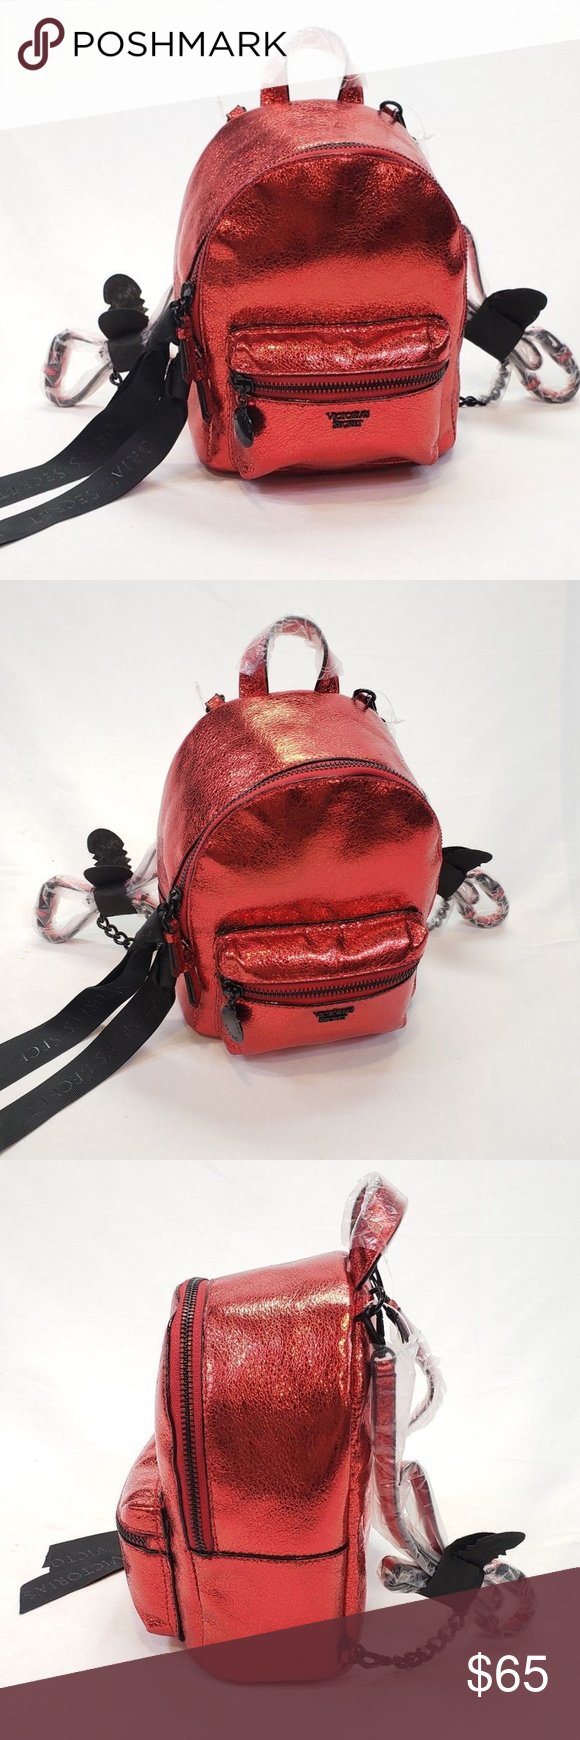 812511a9e65 Victoria s Secret City Crackle Backpack ~ NWT Victoria s Secret Mini CITY  Backpack RED METALLIC CRACKLE Bag